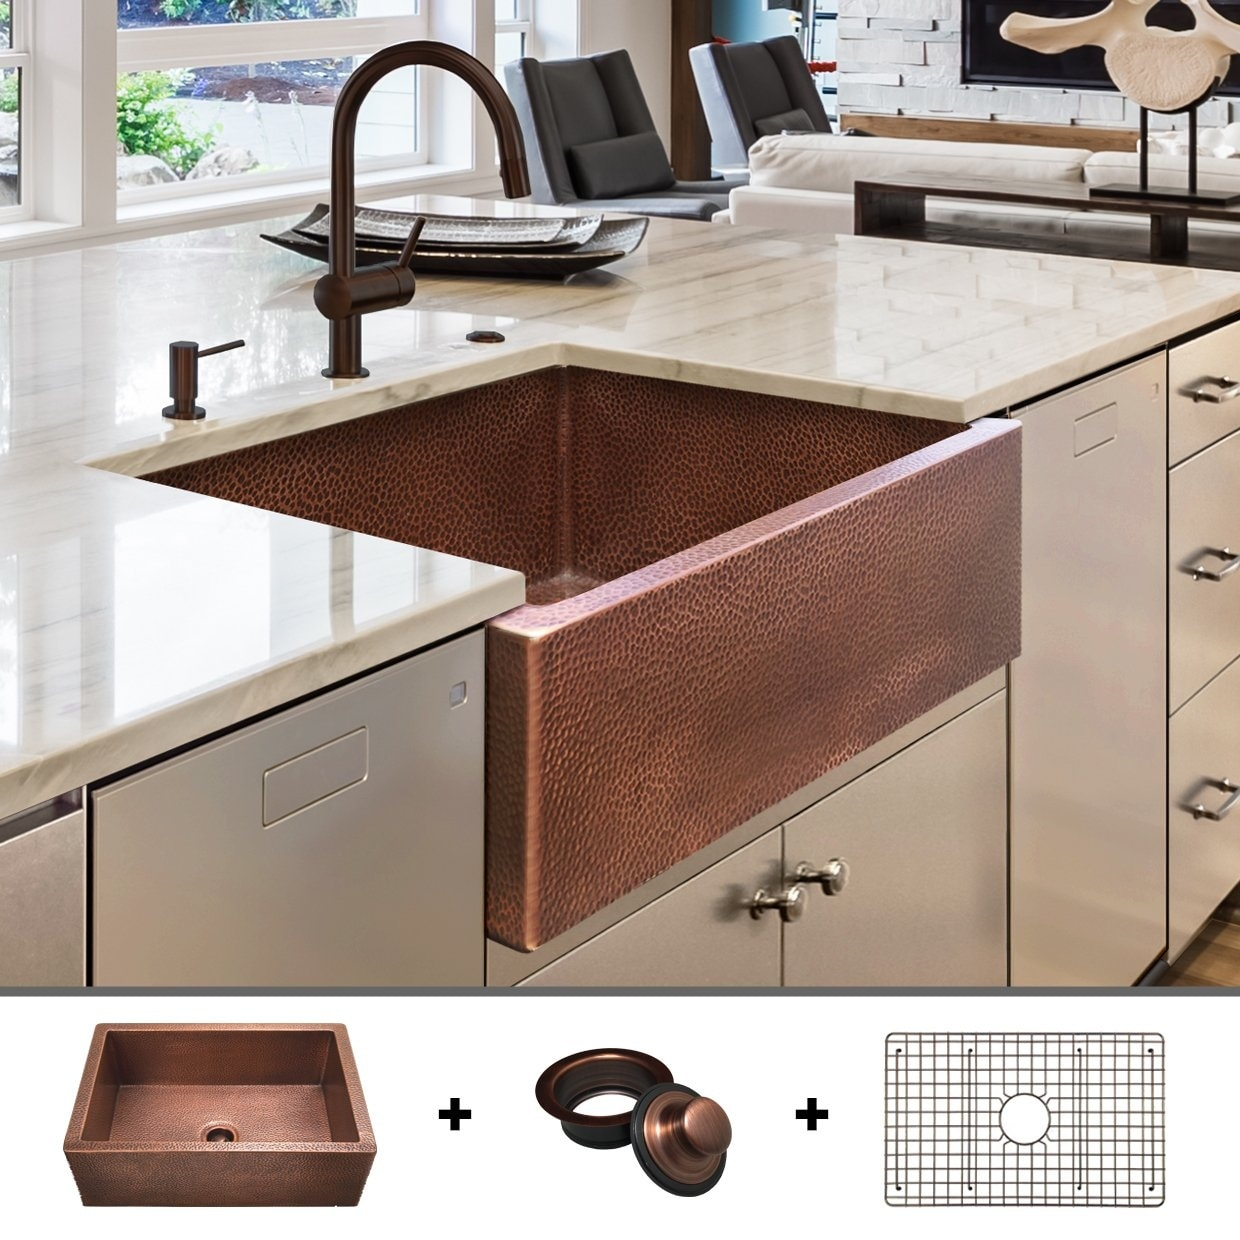 heavy 12 gauge luxury 30 inch copper farmhouse sink 48 lbs of pure copper includes grid and flange by fossil blu 30 x 22